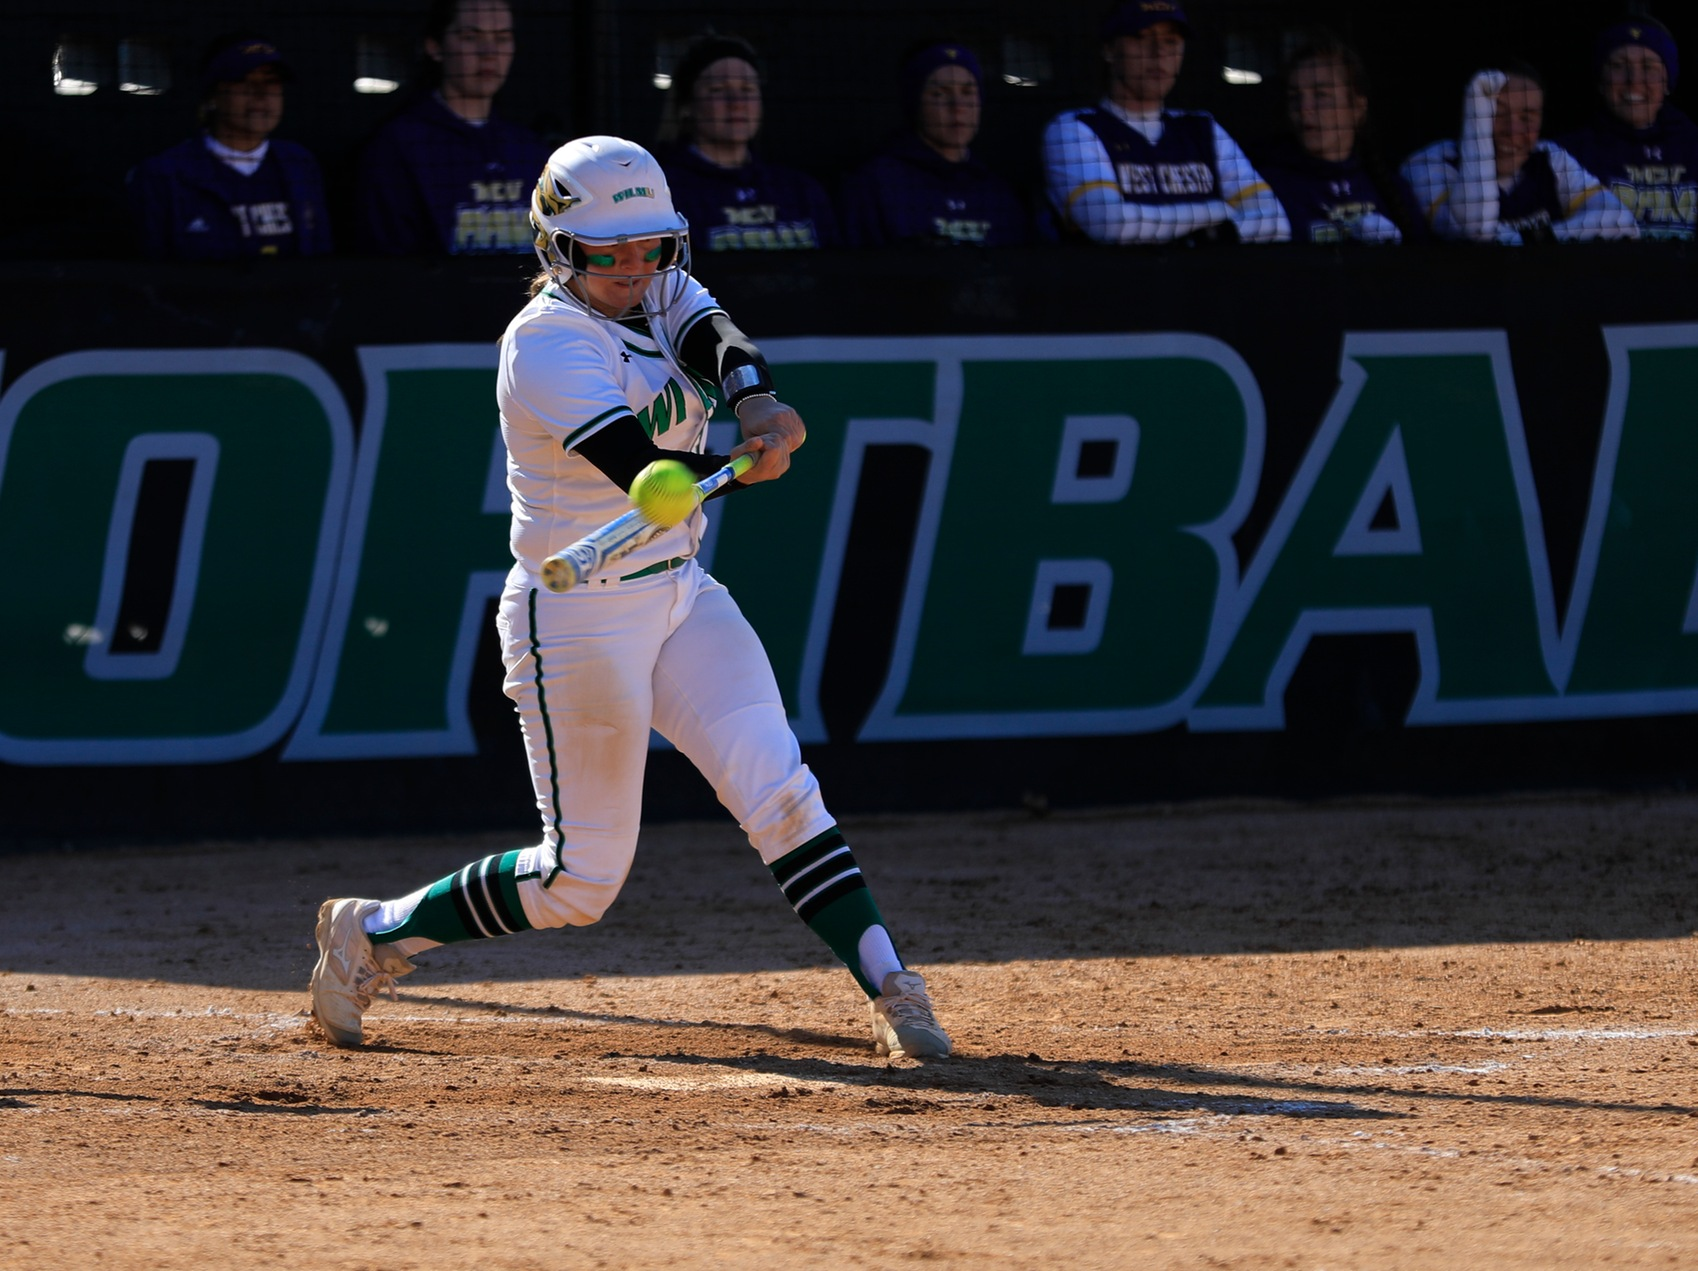 Copyright 2019; Wilmington University. All rights reserved. File photo of Lauren Lopez who set a new single game record with eight RBI at Holy Family. Photo by Chris Vitale. March 26, 2019 vs. West Chester.